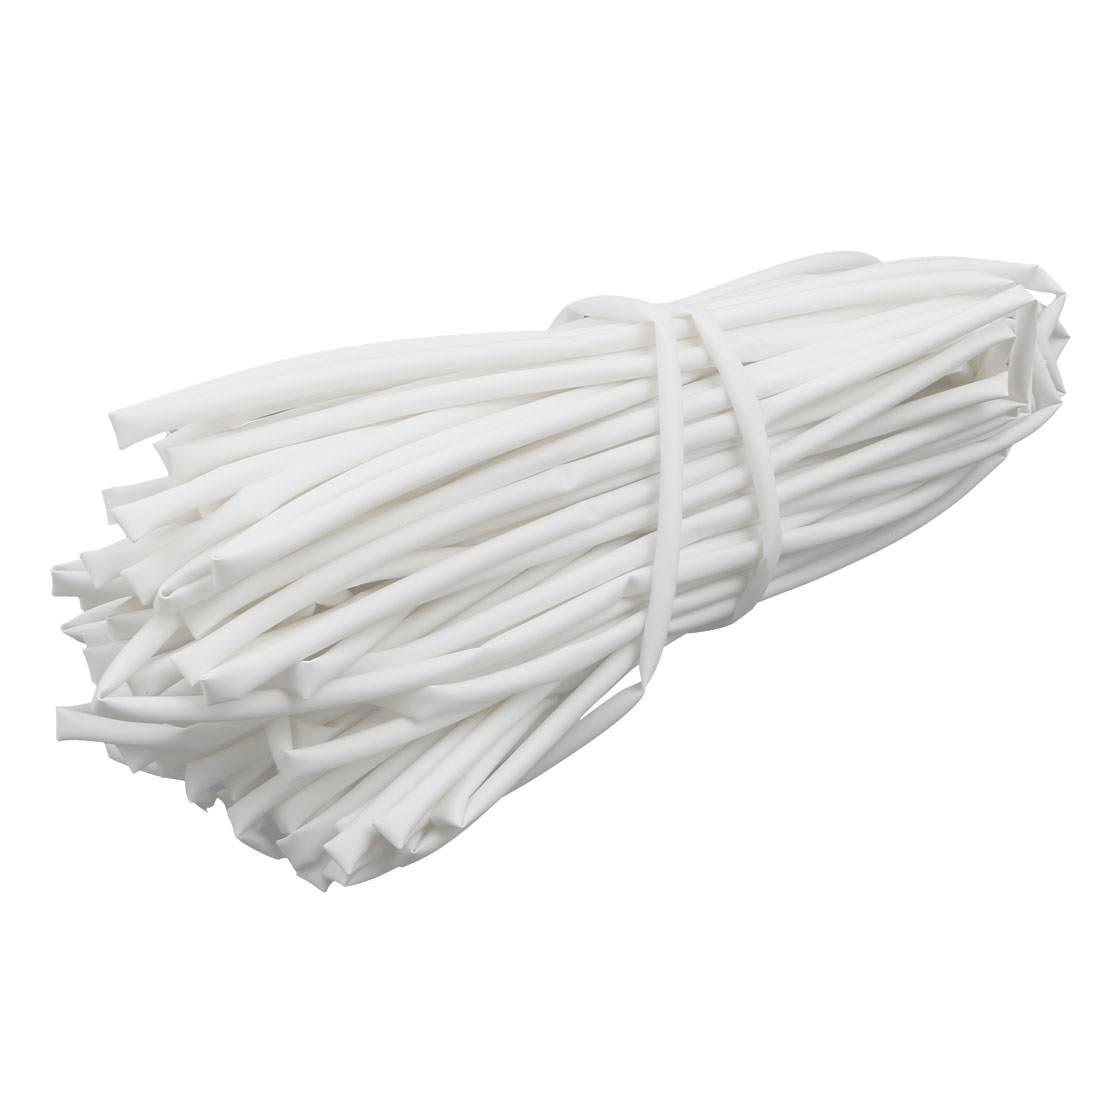 30M Length 4mm Inner Dia Polyolefin Insulated Heat Shrink Tube Wire Wrap White